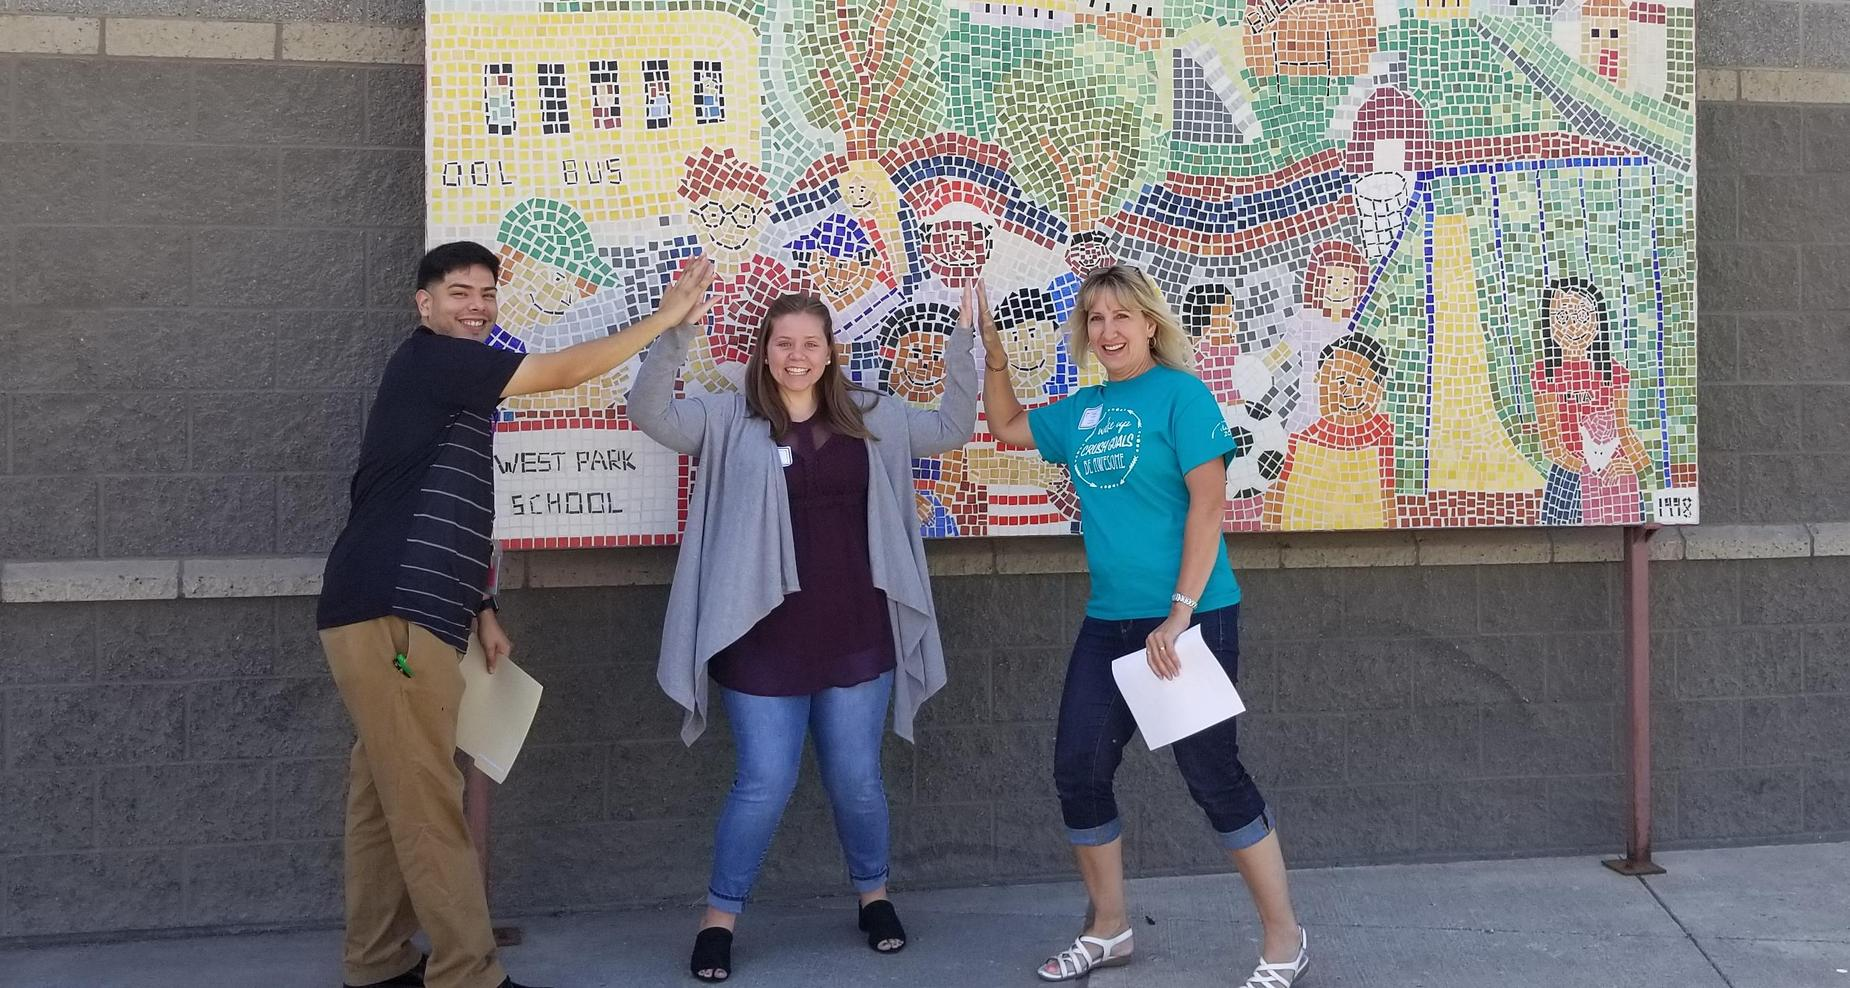 New teachers pointing mural at West Park.